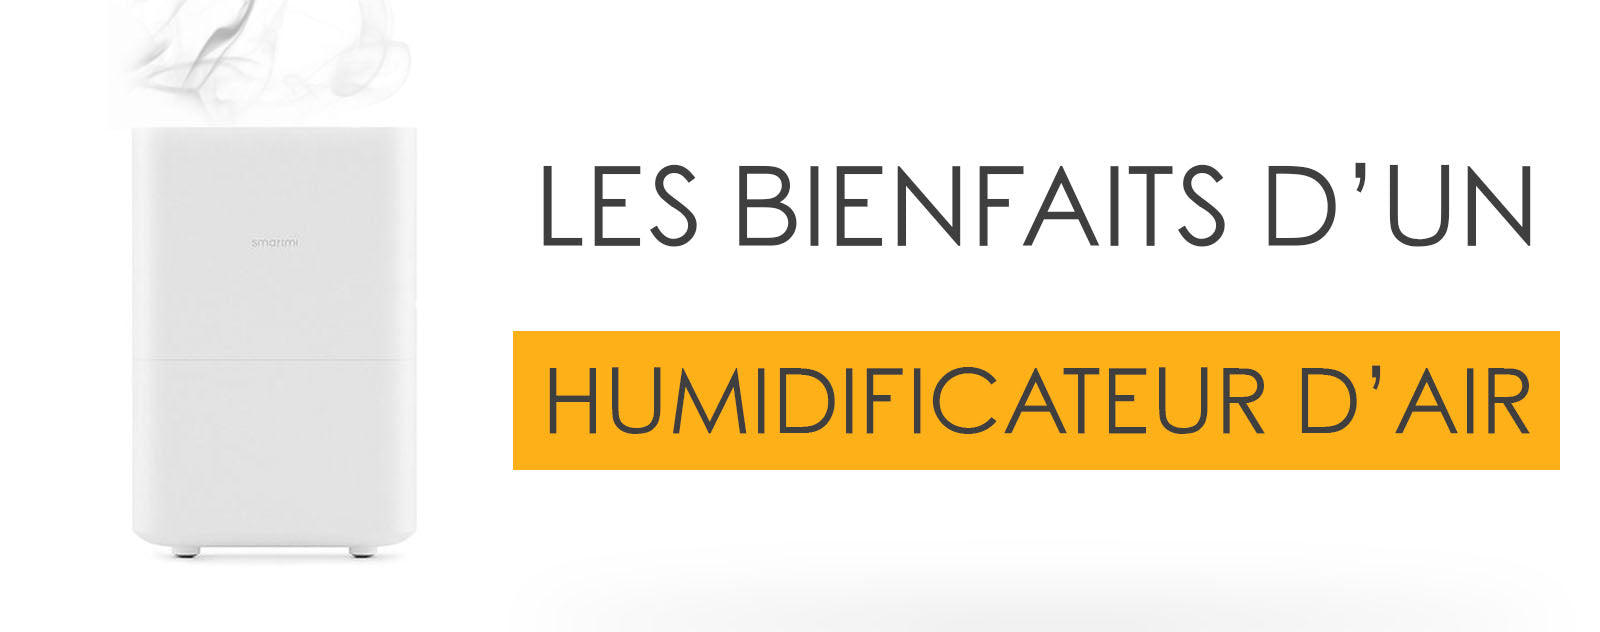 Les Bienfaits d'un Humidificateur d'air